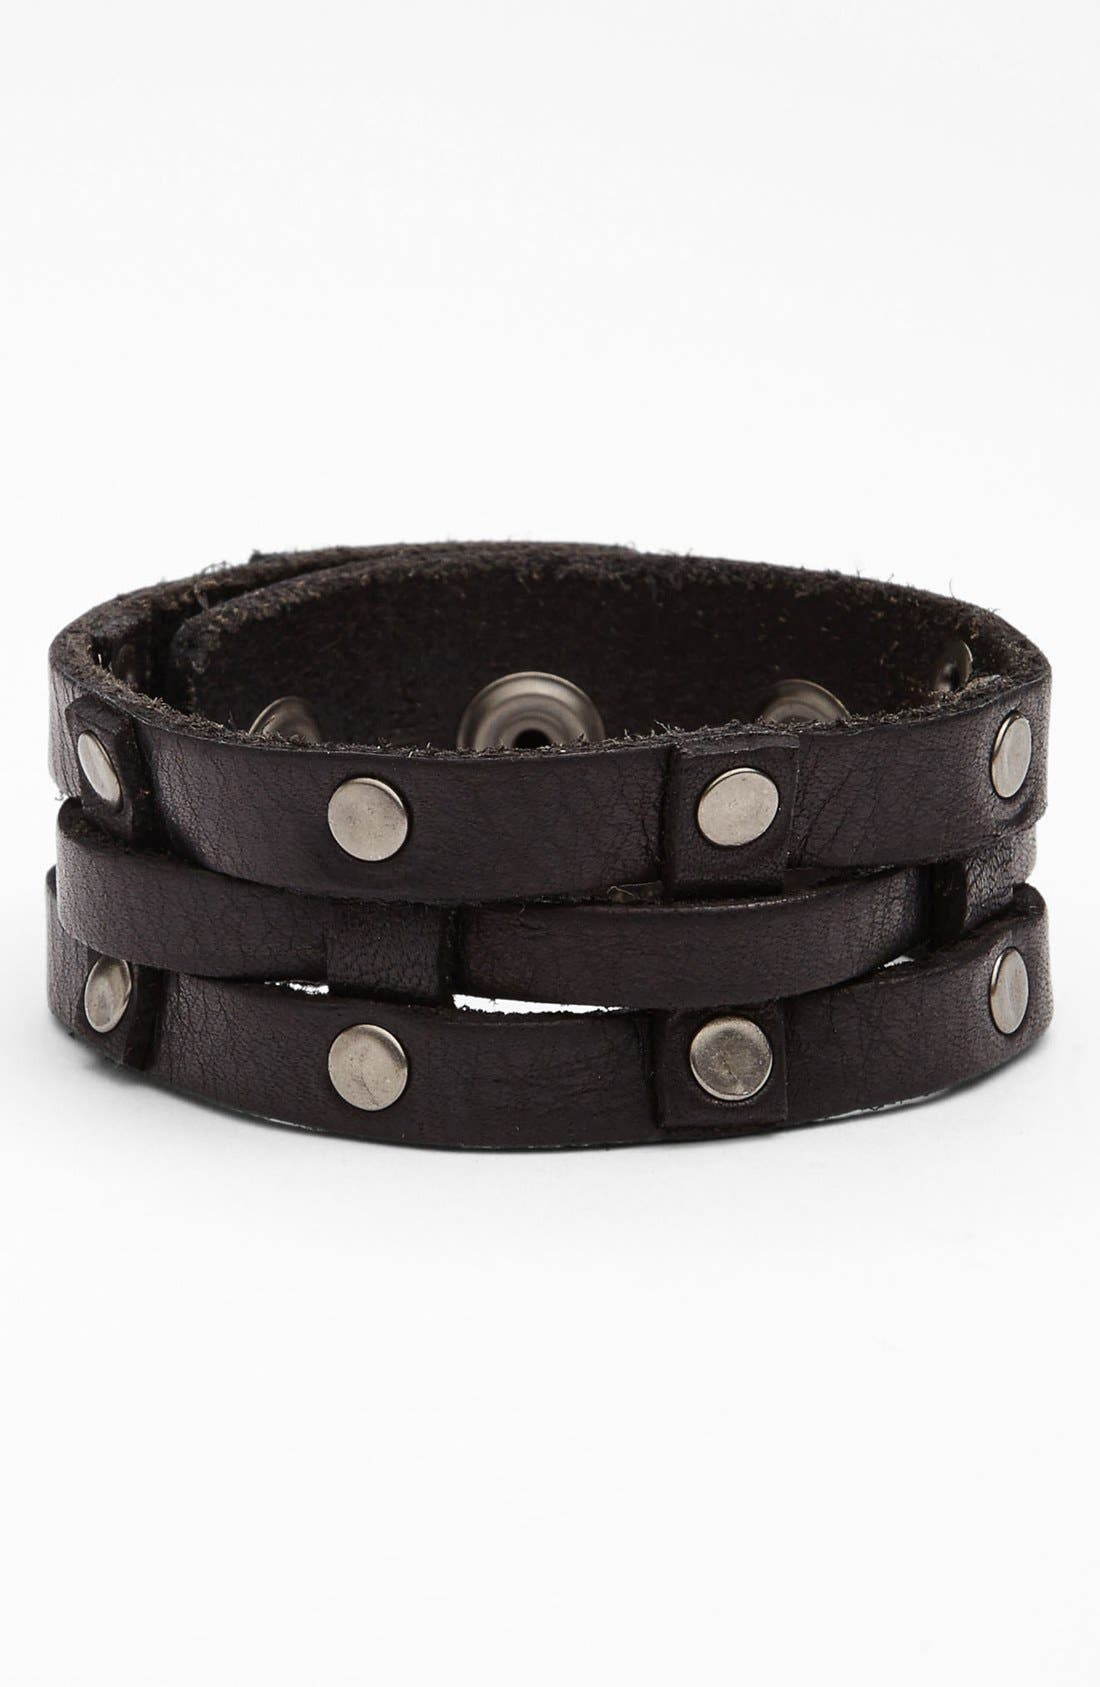 Main Image - Will Leather Goods Leather Cuff Bracelet